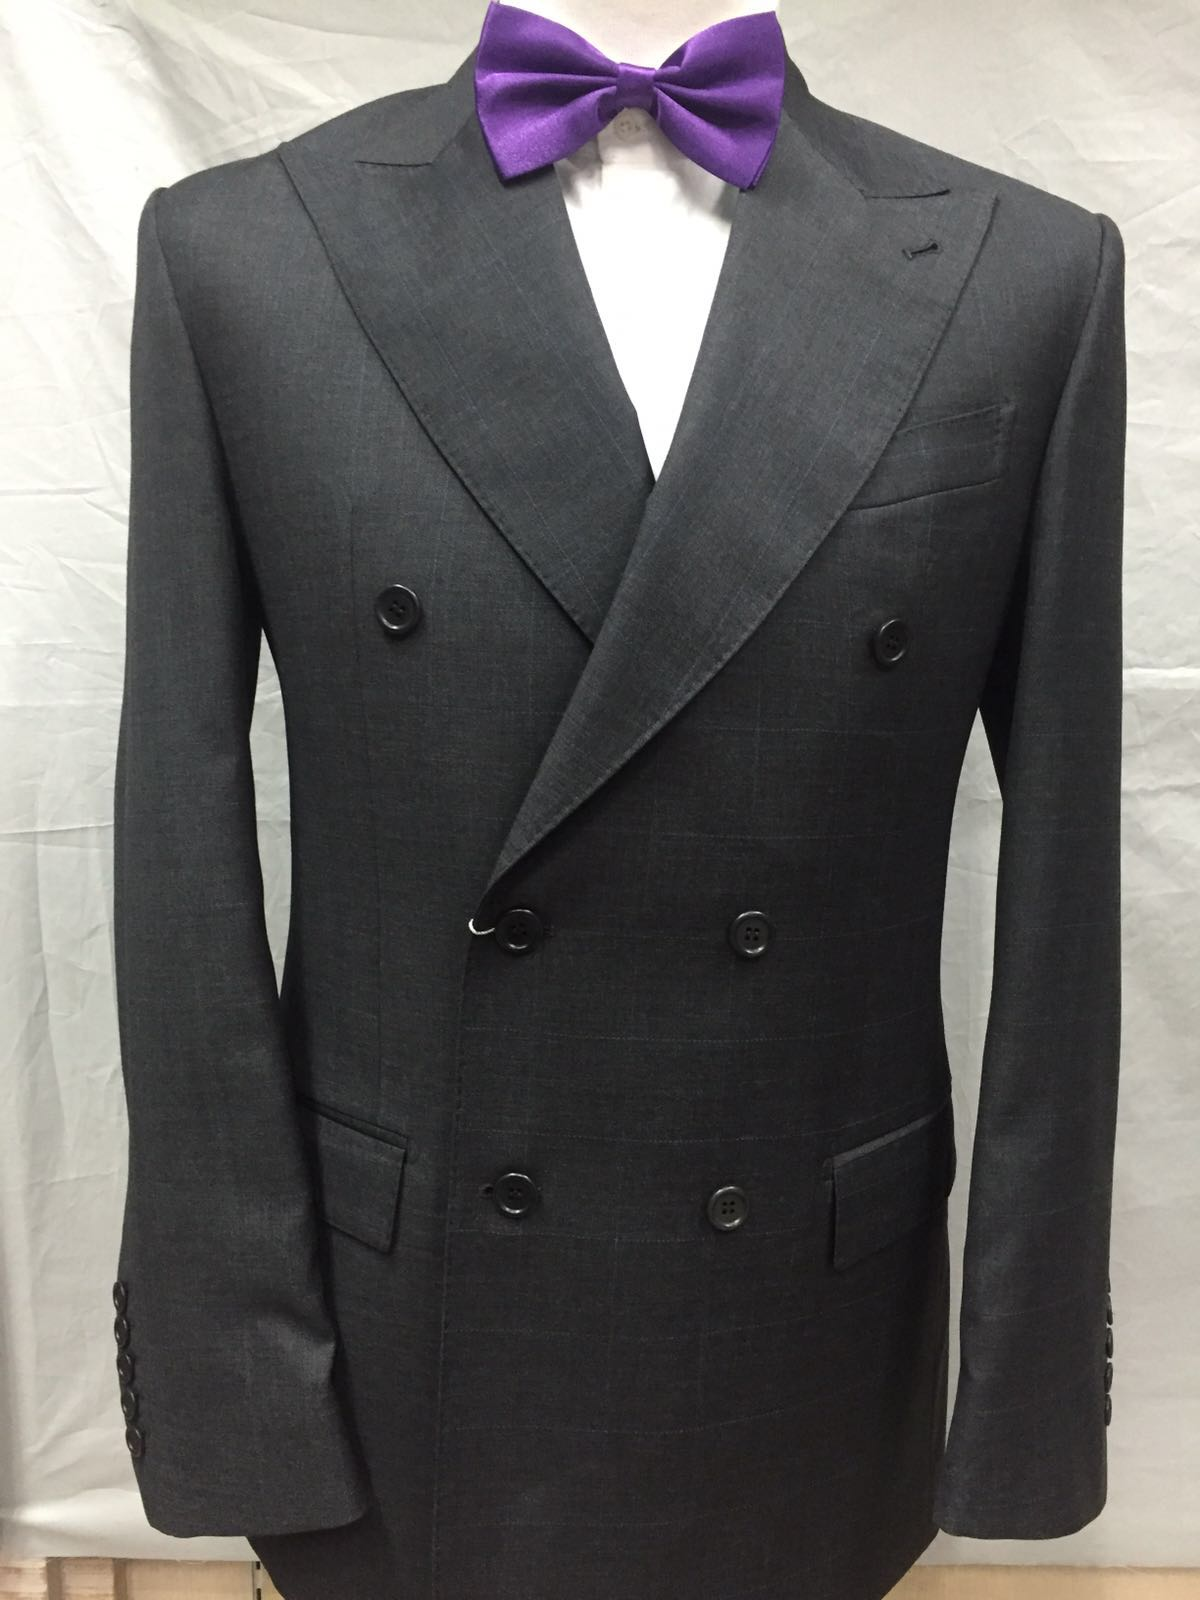 Grey double breasted Cerrutti wool suit with large peak lapel.